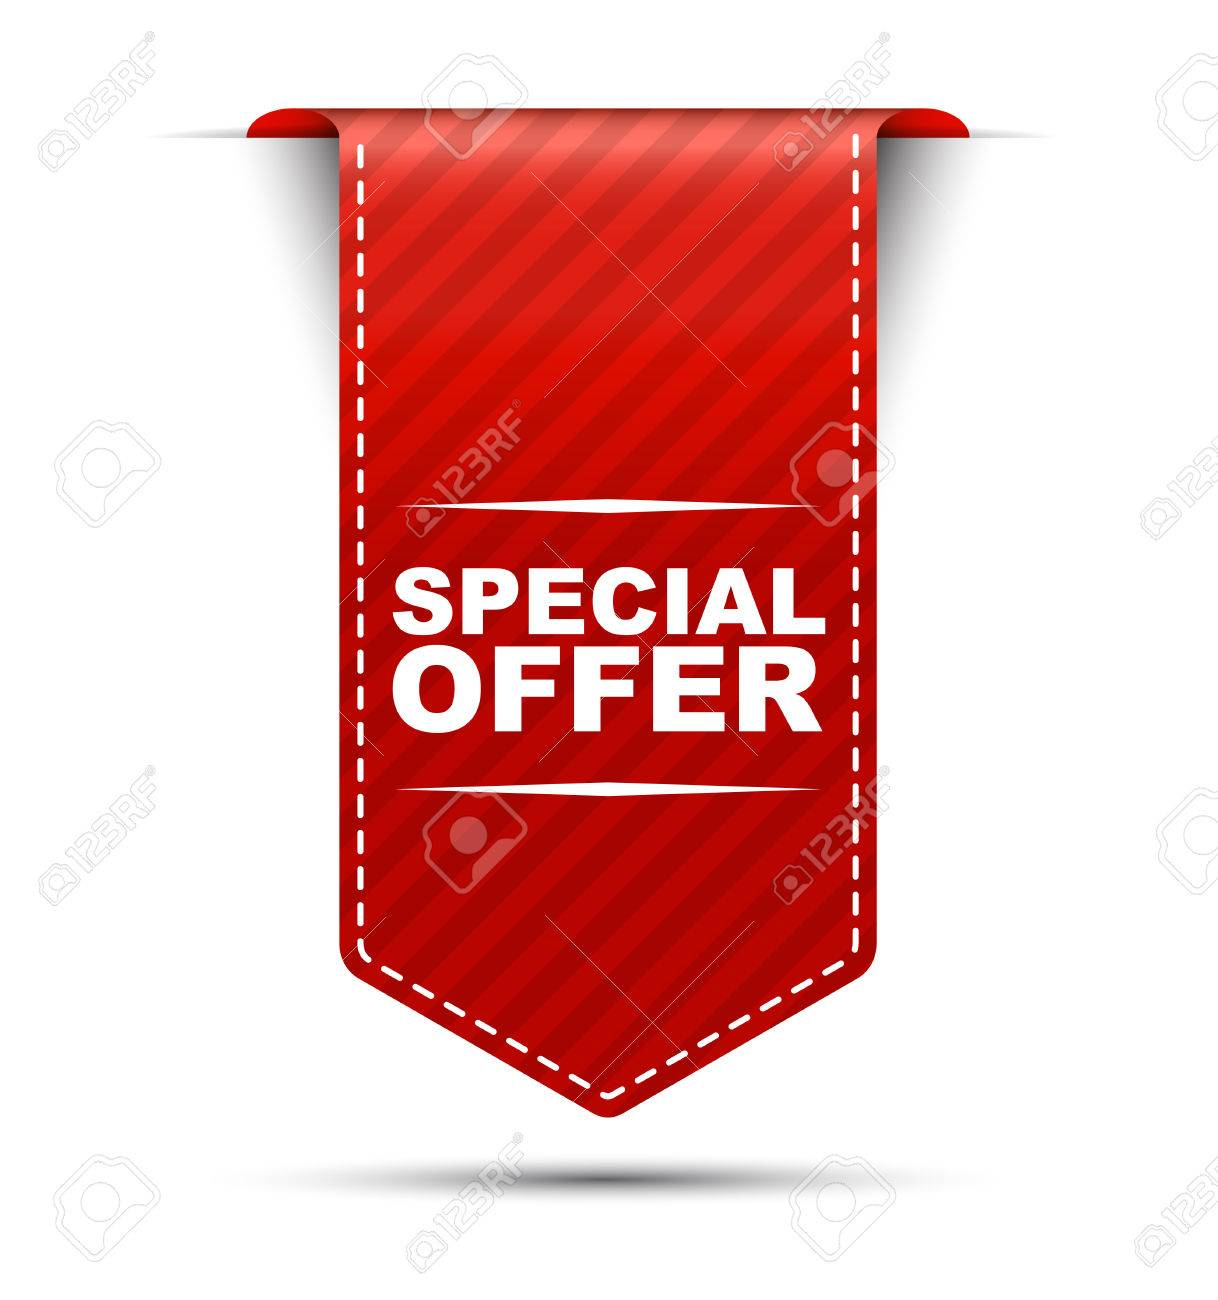 This is red vector banner design special offer - 52963697